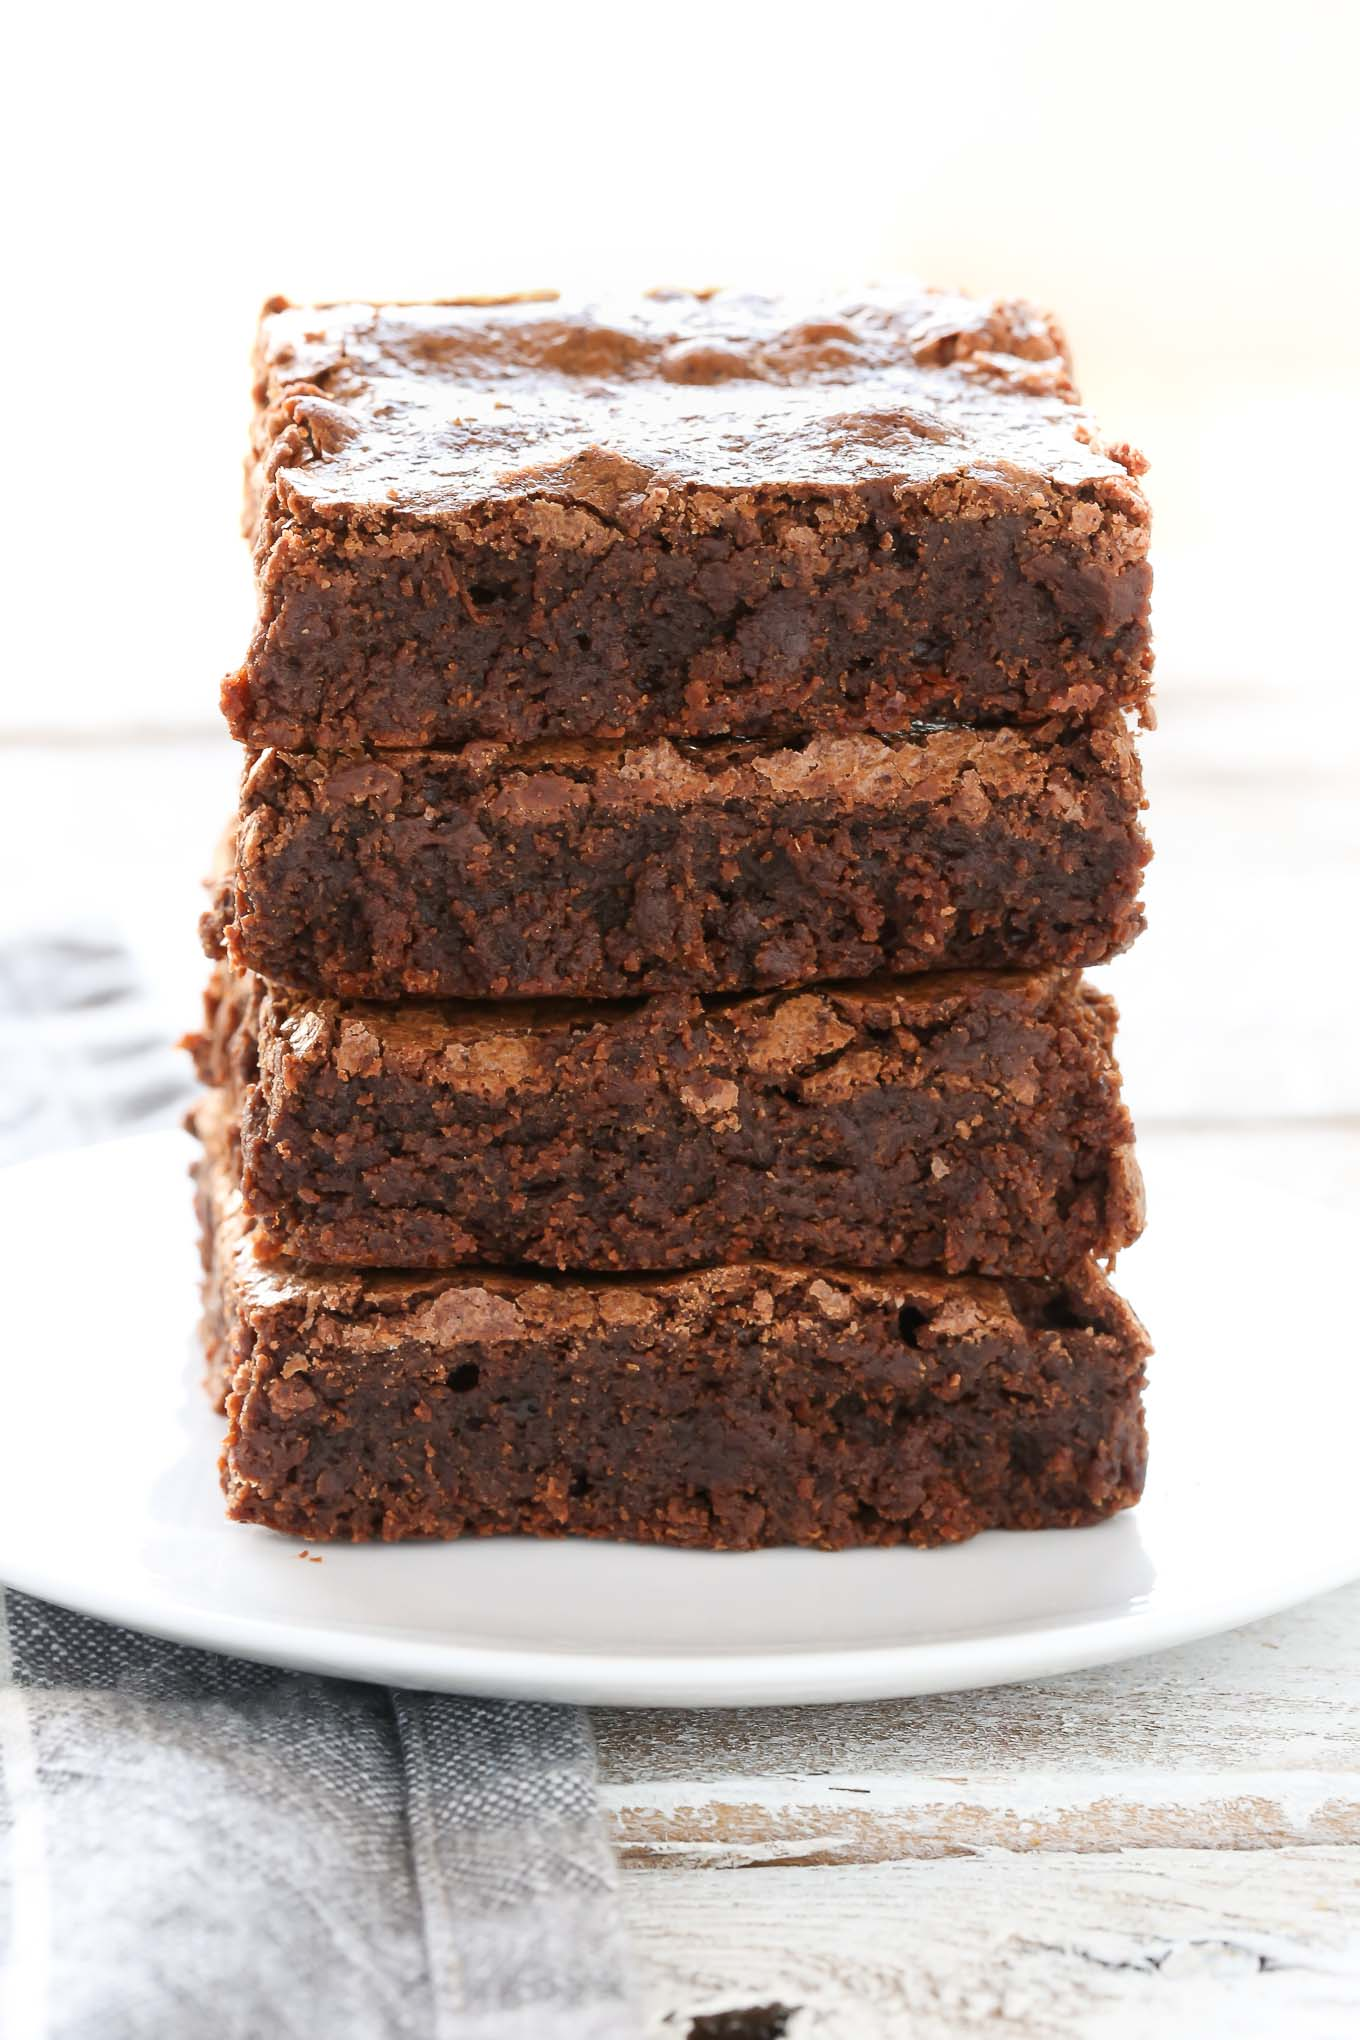 An easy recipe for homemade fudgy brownies made in one bowl with just a few simple ingredients!